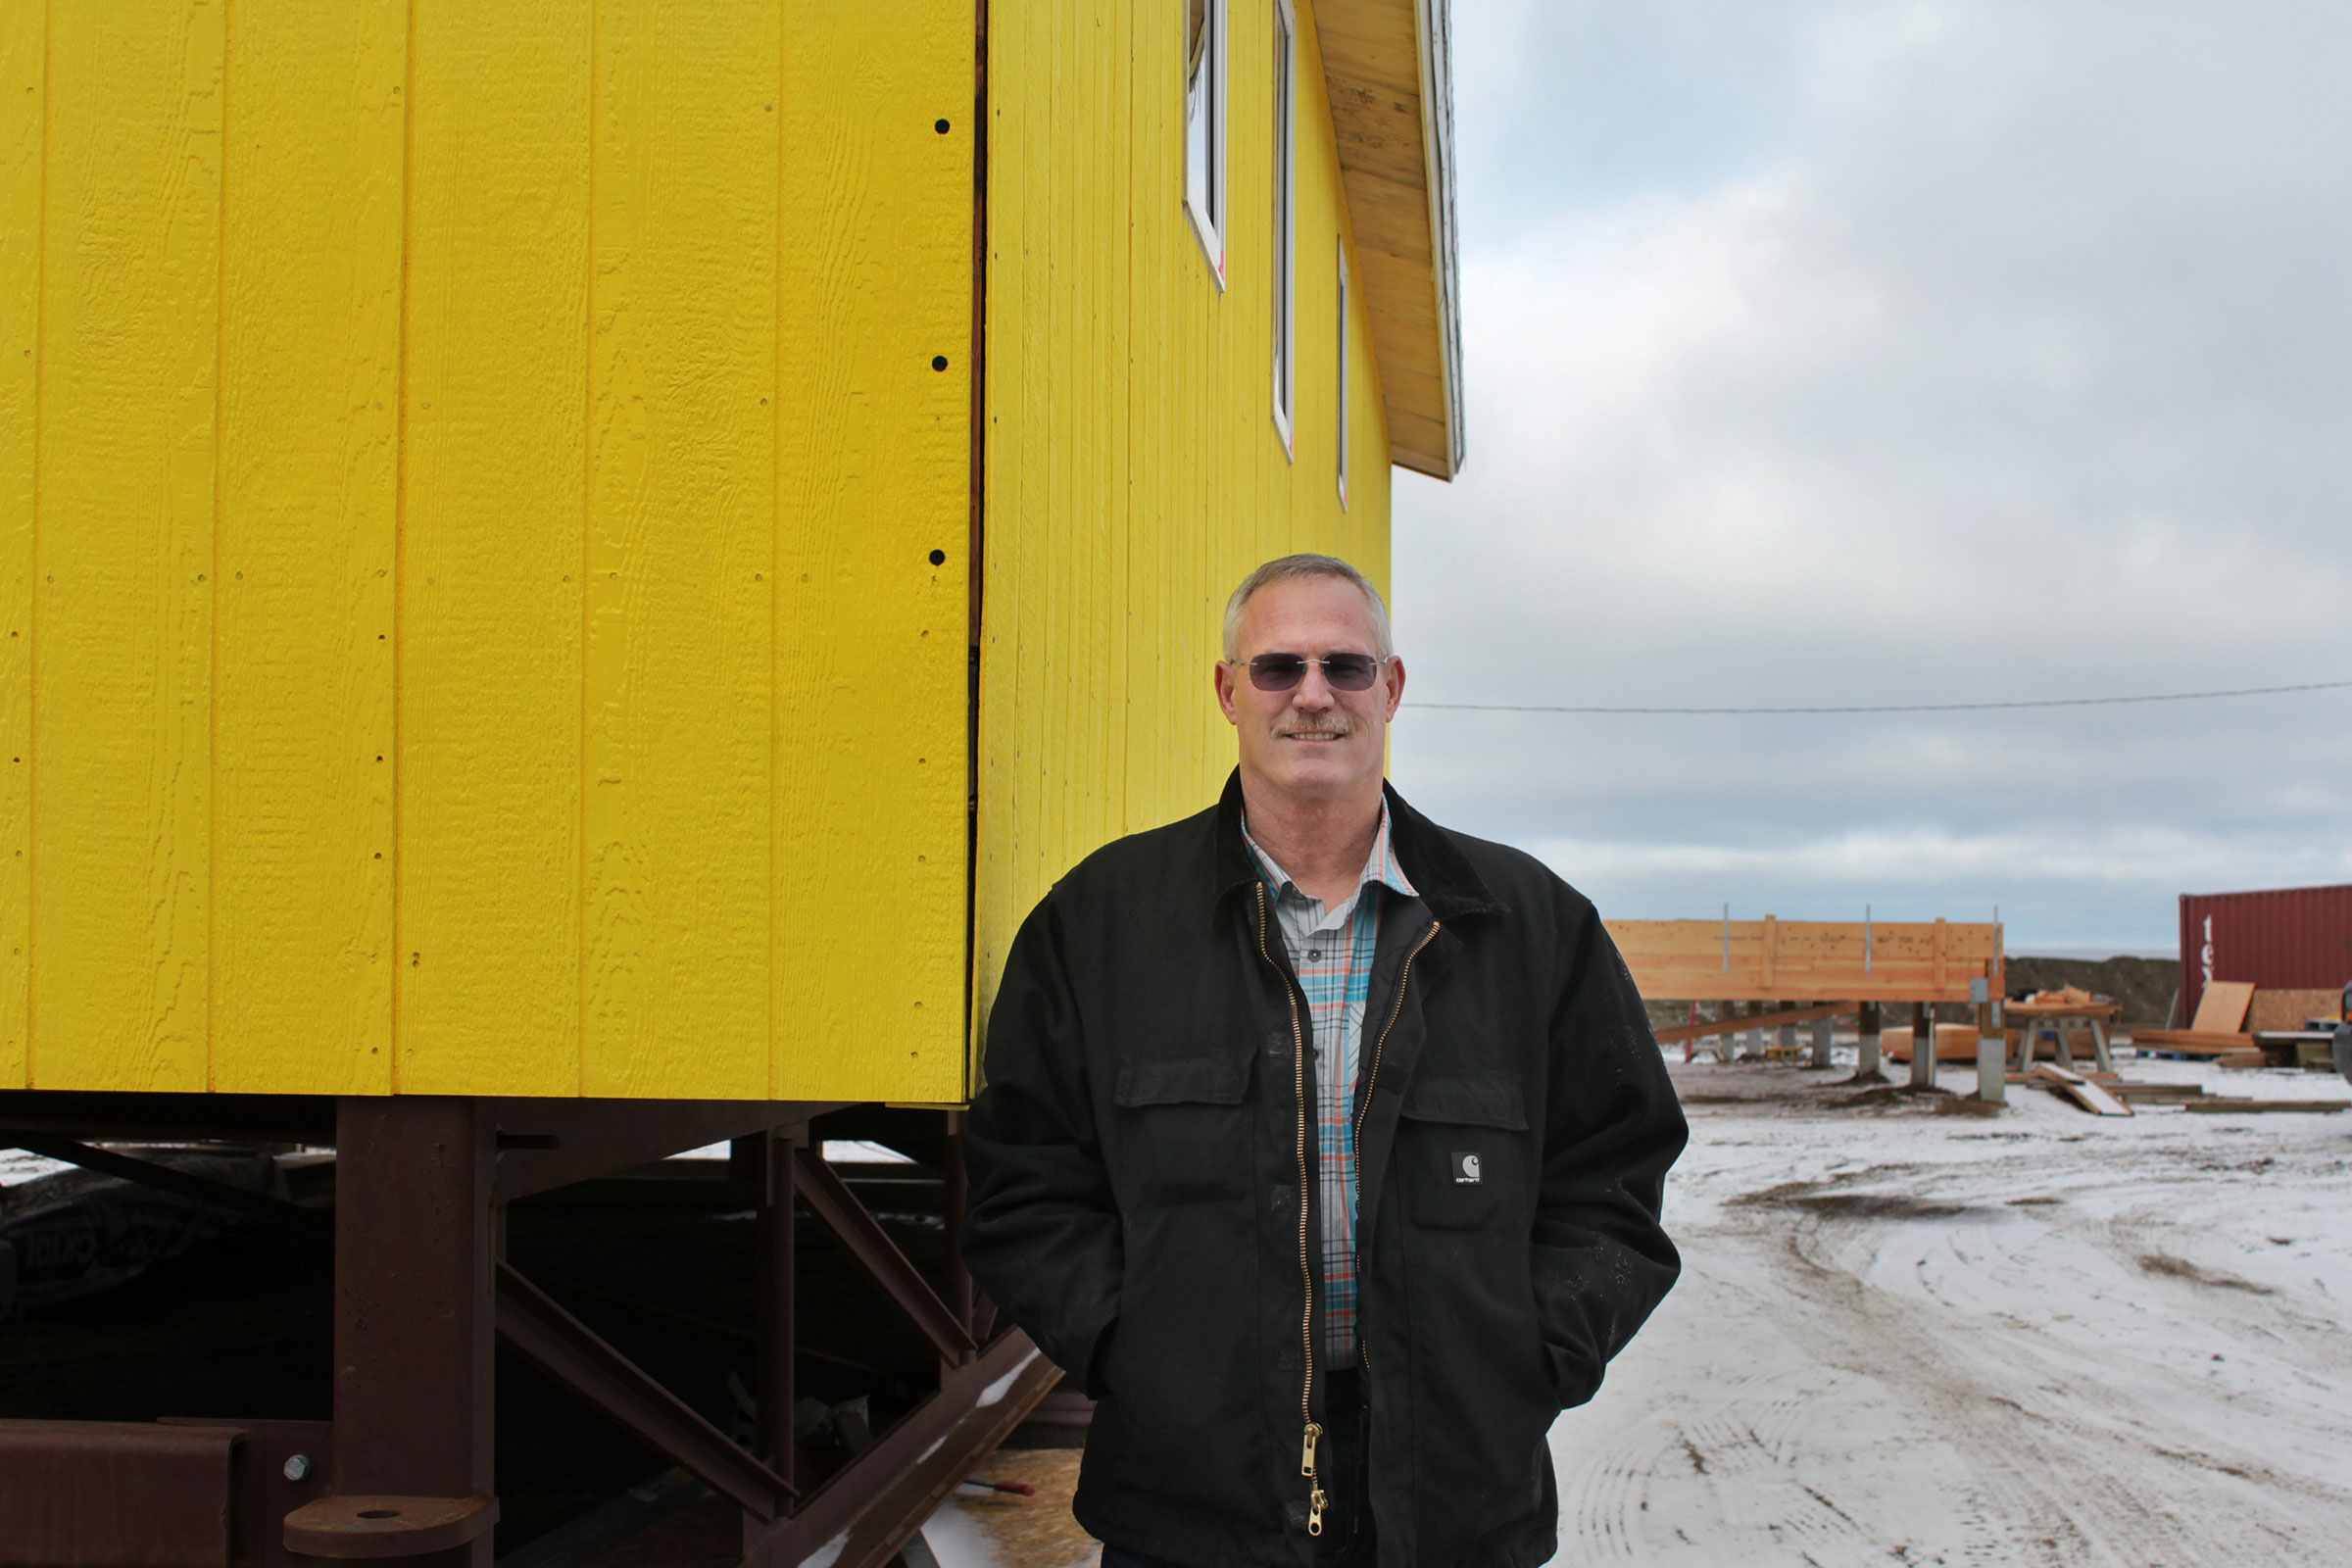 Claude Garoutte is building eco-houses on the North Slope. Madeline Ostrander